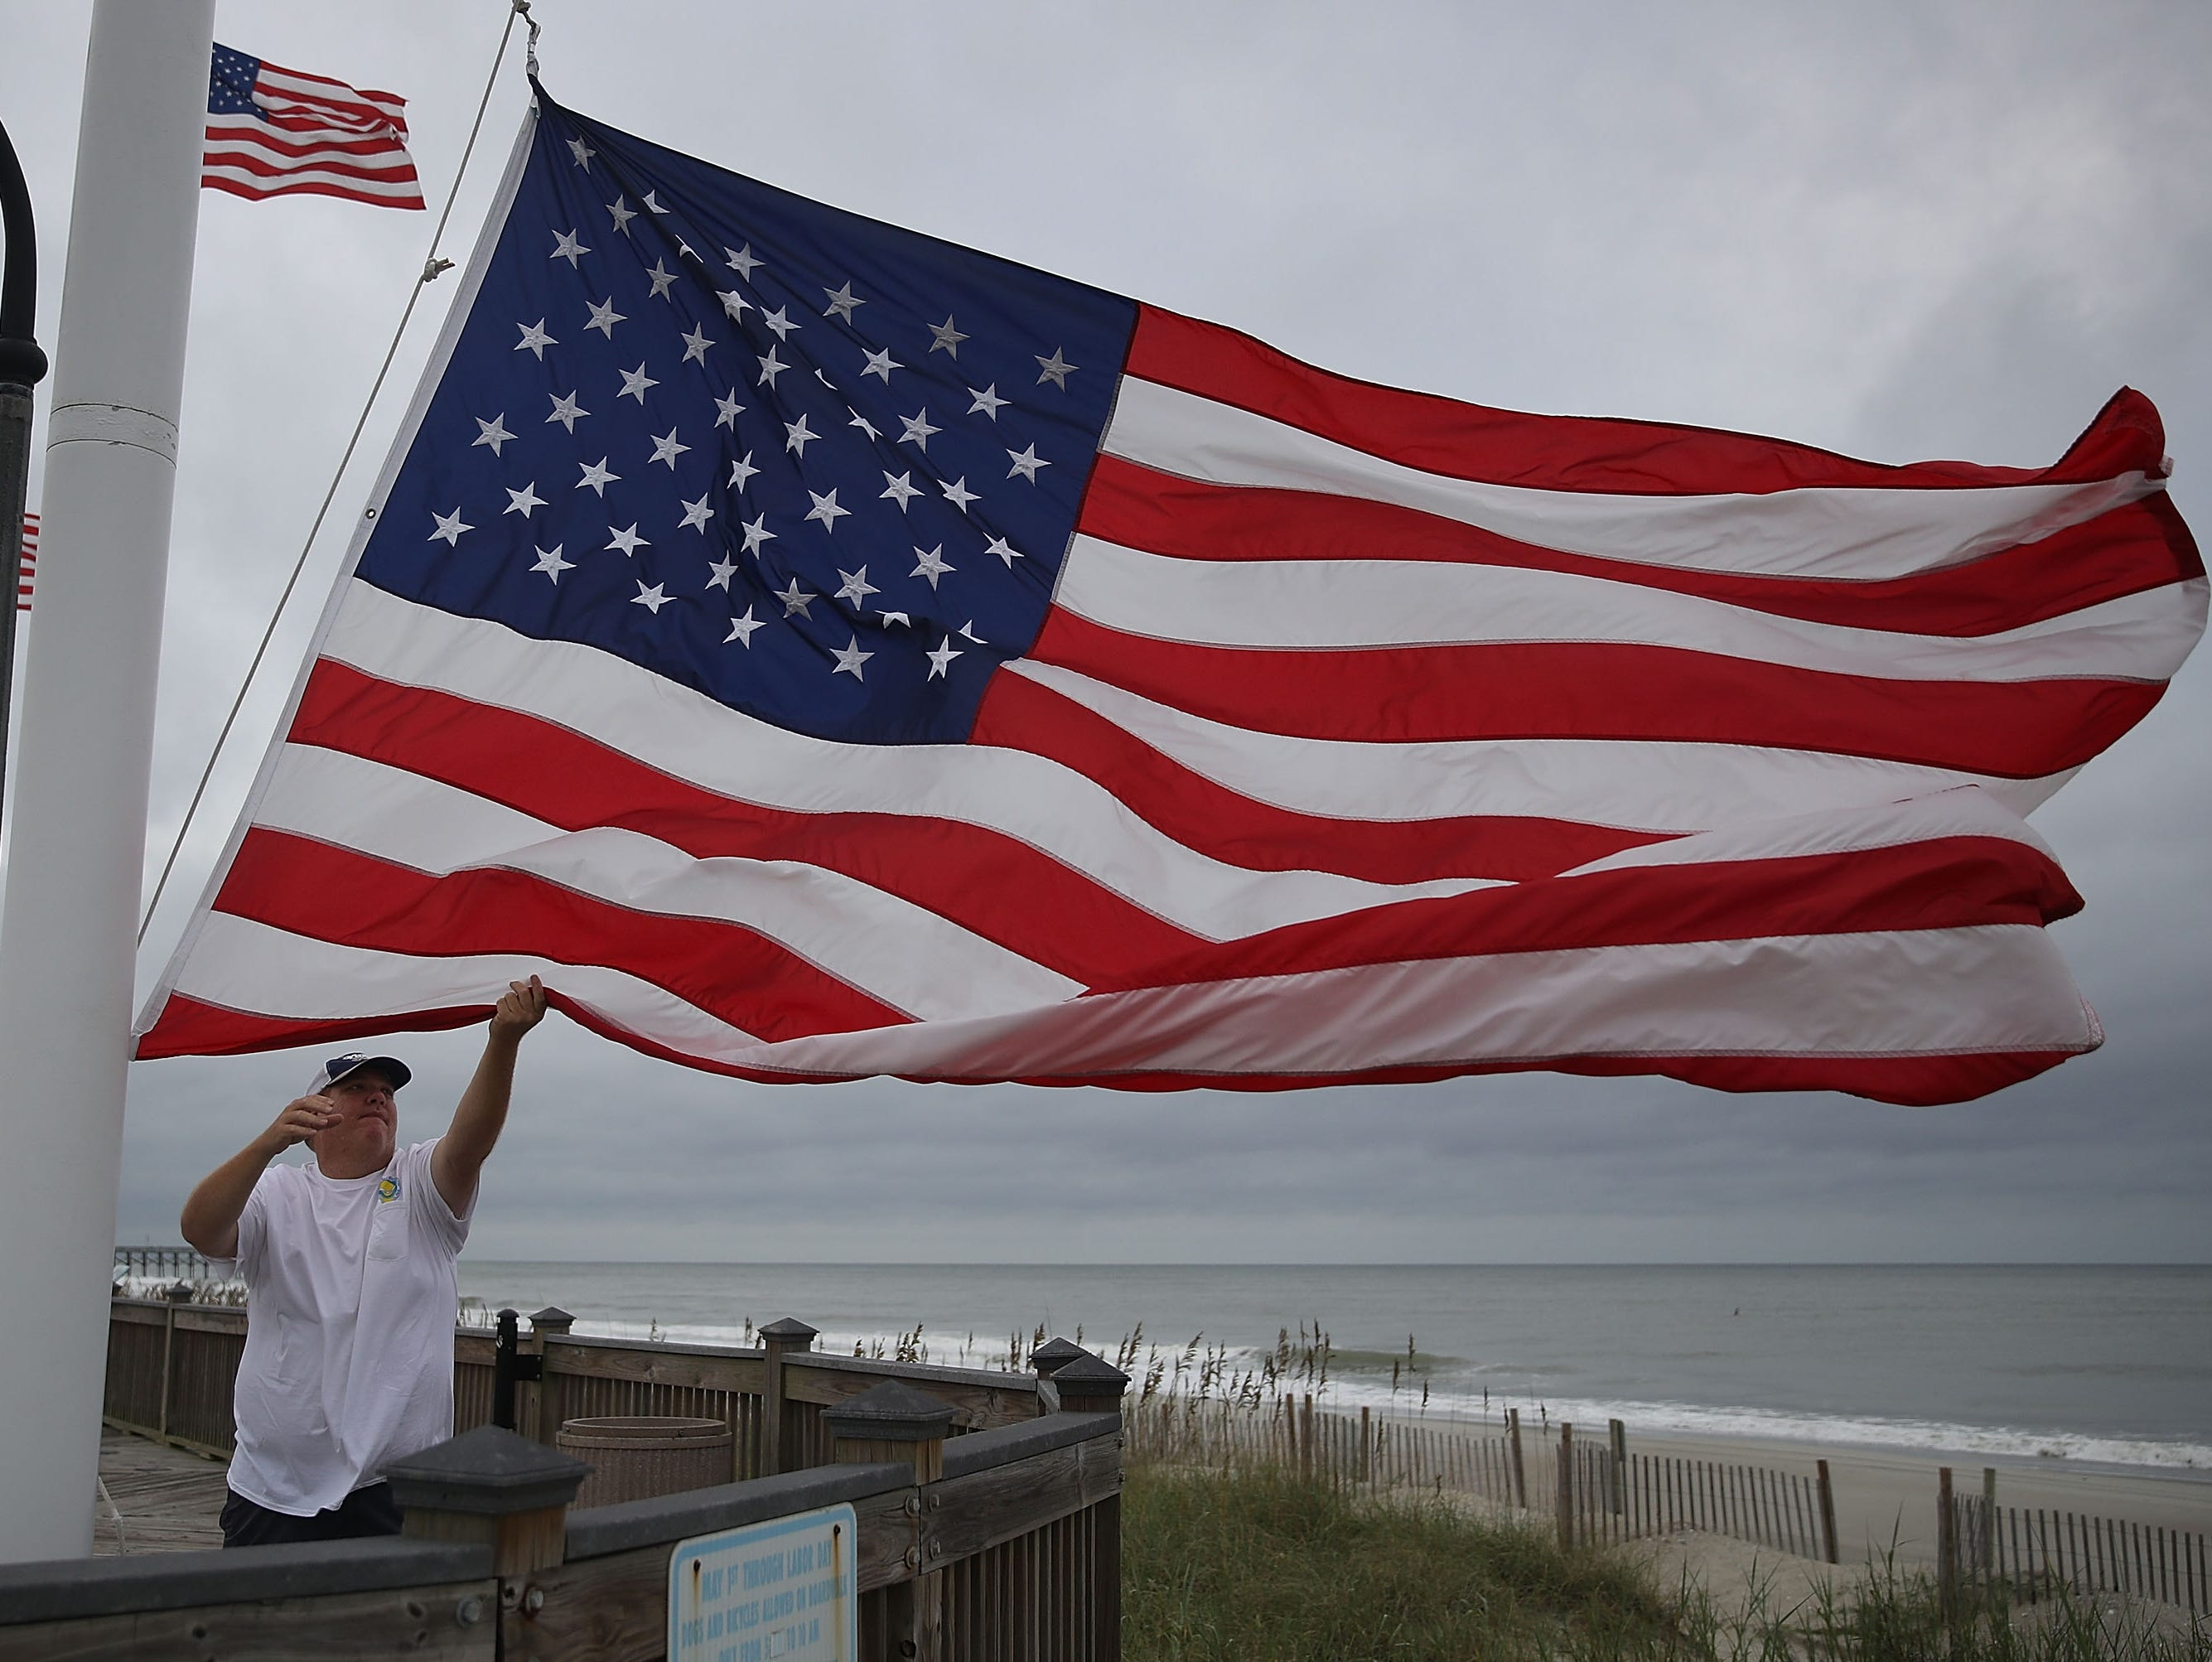 Jason Morris takes down one of several American flags ahead of the arrival of Hurricane Florence on Sept. 13, 2018 in Myrtle Beach, United States. Hurricane Florence is expected to arrive on Friday possibly as a category 2 storm along the North Carolina and South Carolina coastline.